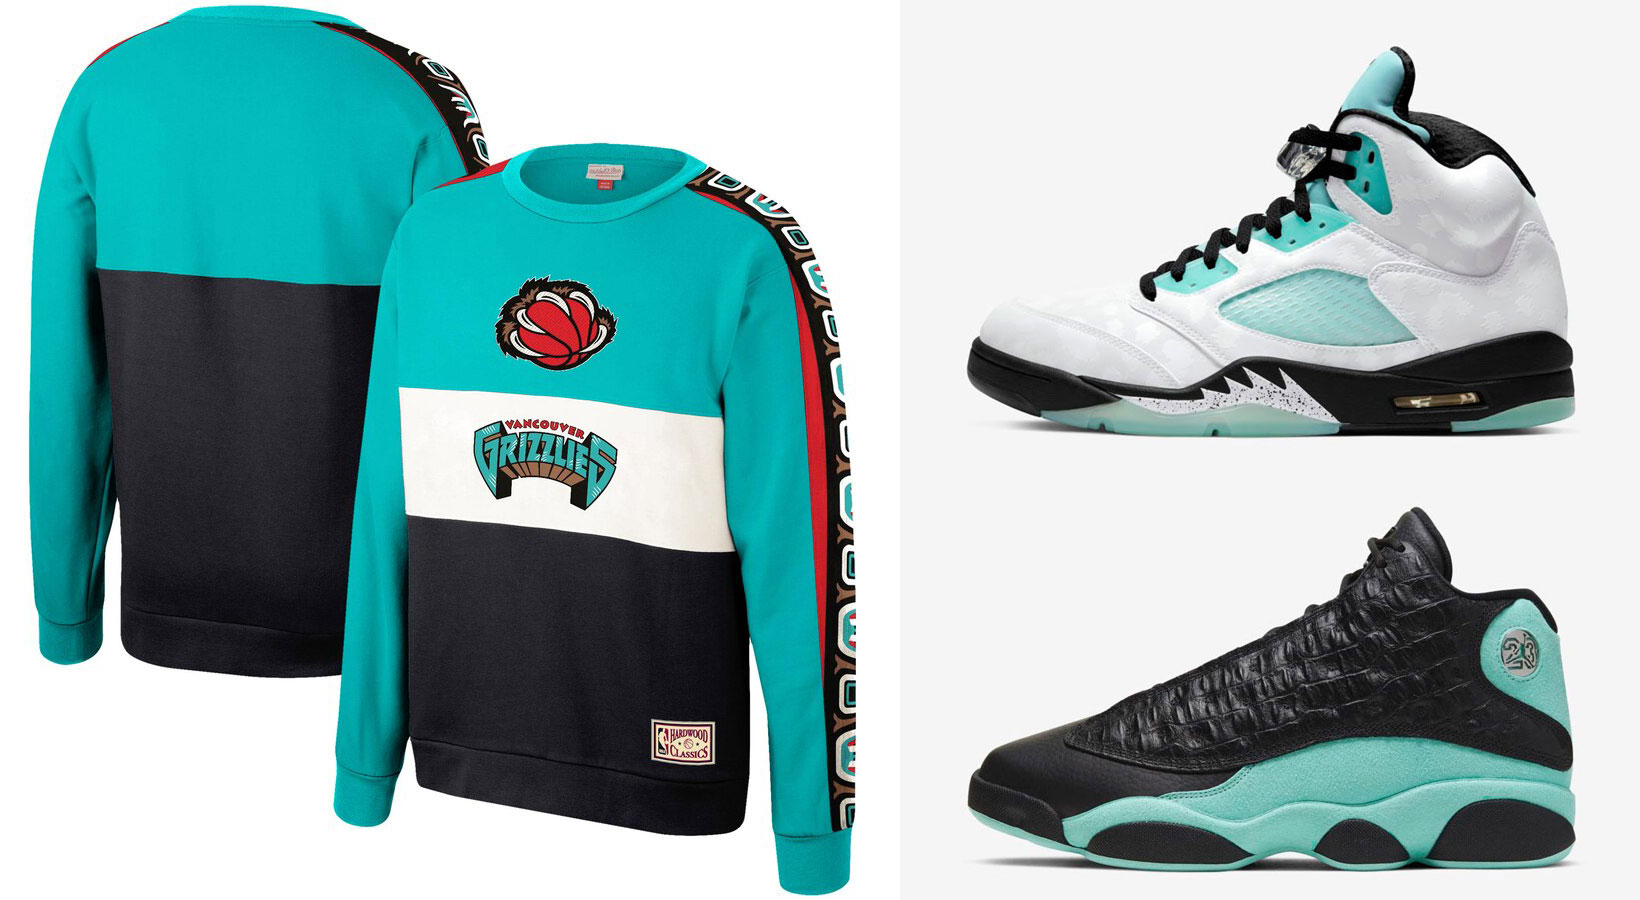 air-jordan-island-green-nba-retro-grizzlies-sweatshirt-match